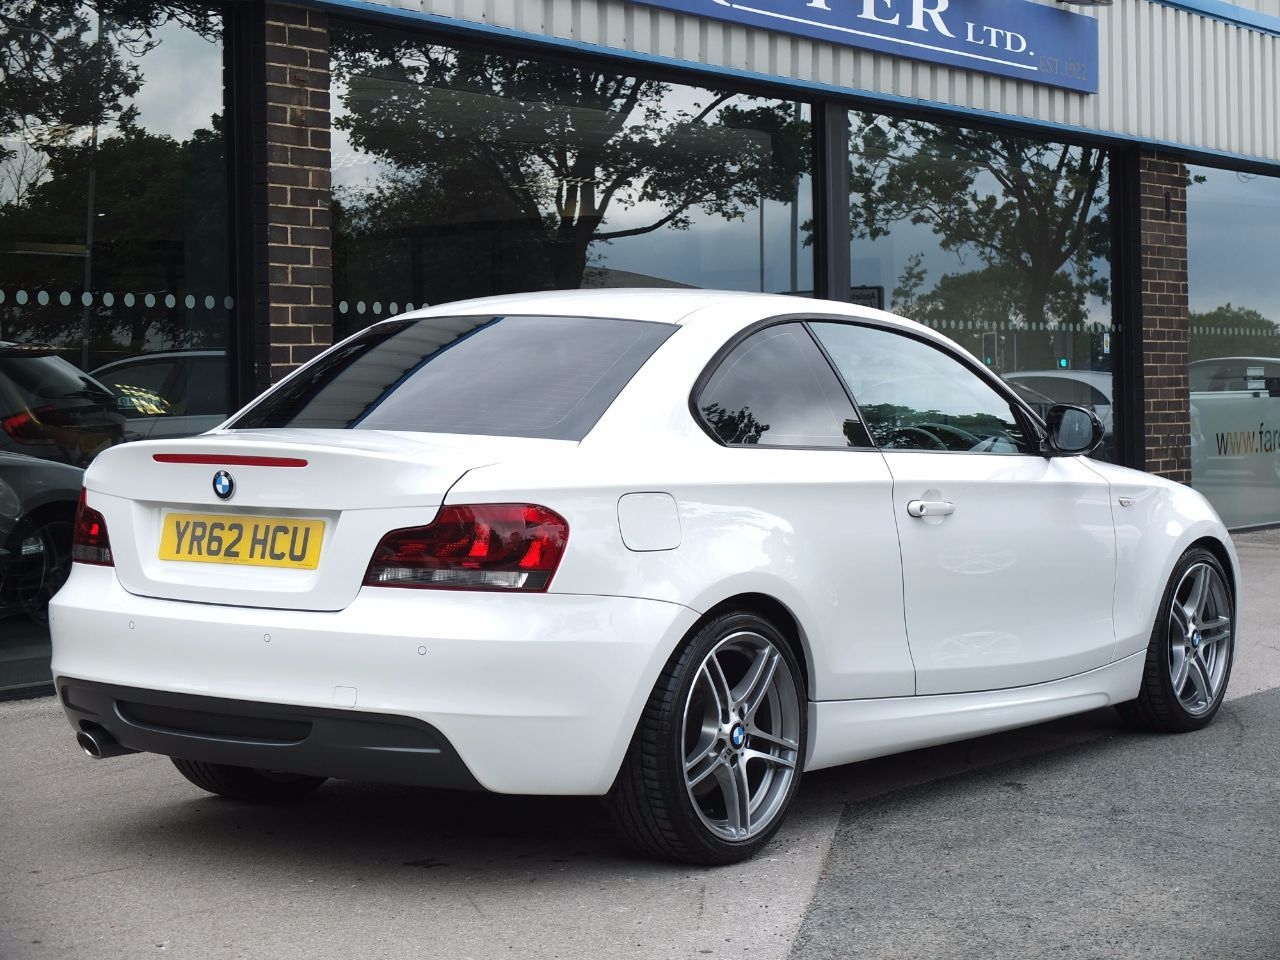 used bmw 1 series 118d sport plus edition coupe for sale in bradford west yorkshire fa roper ltd. Black Bedroom Furniture Sets. Home Design Ideas